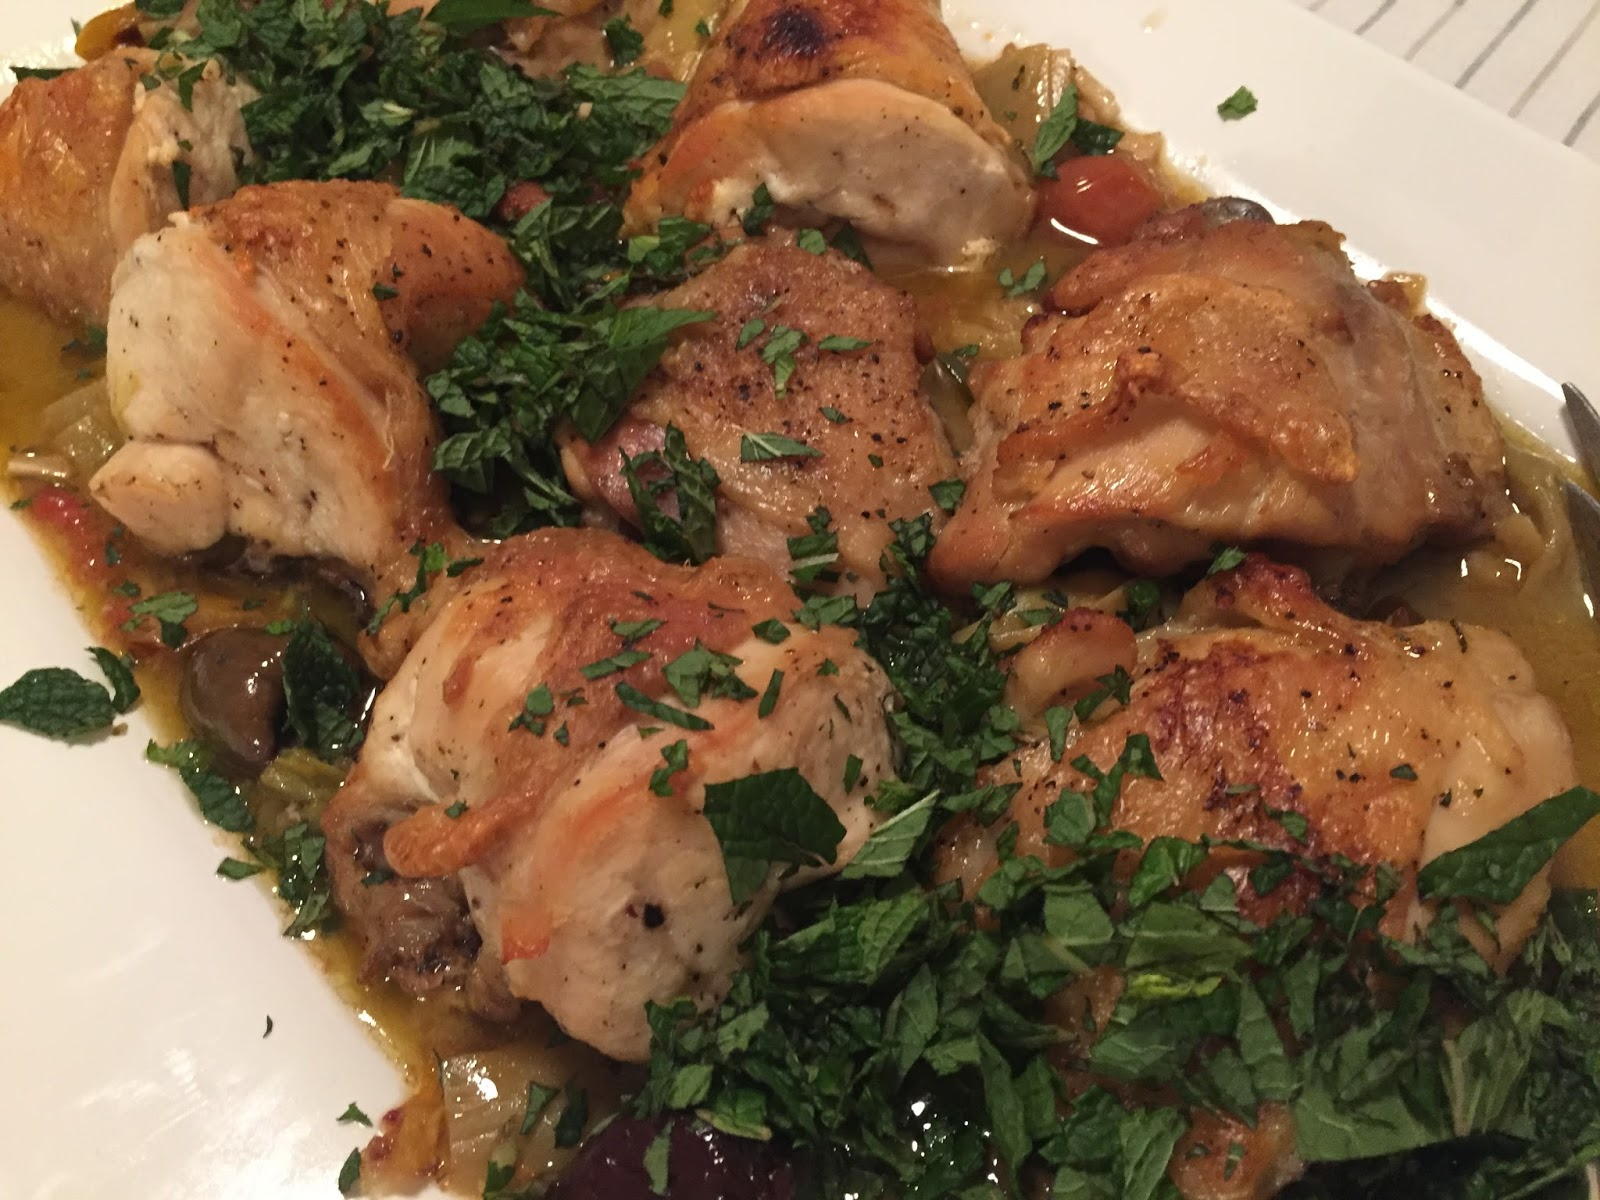 KnitOne,PearlOnion: Braised Chicken with Artichokes and Olives